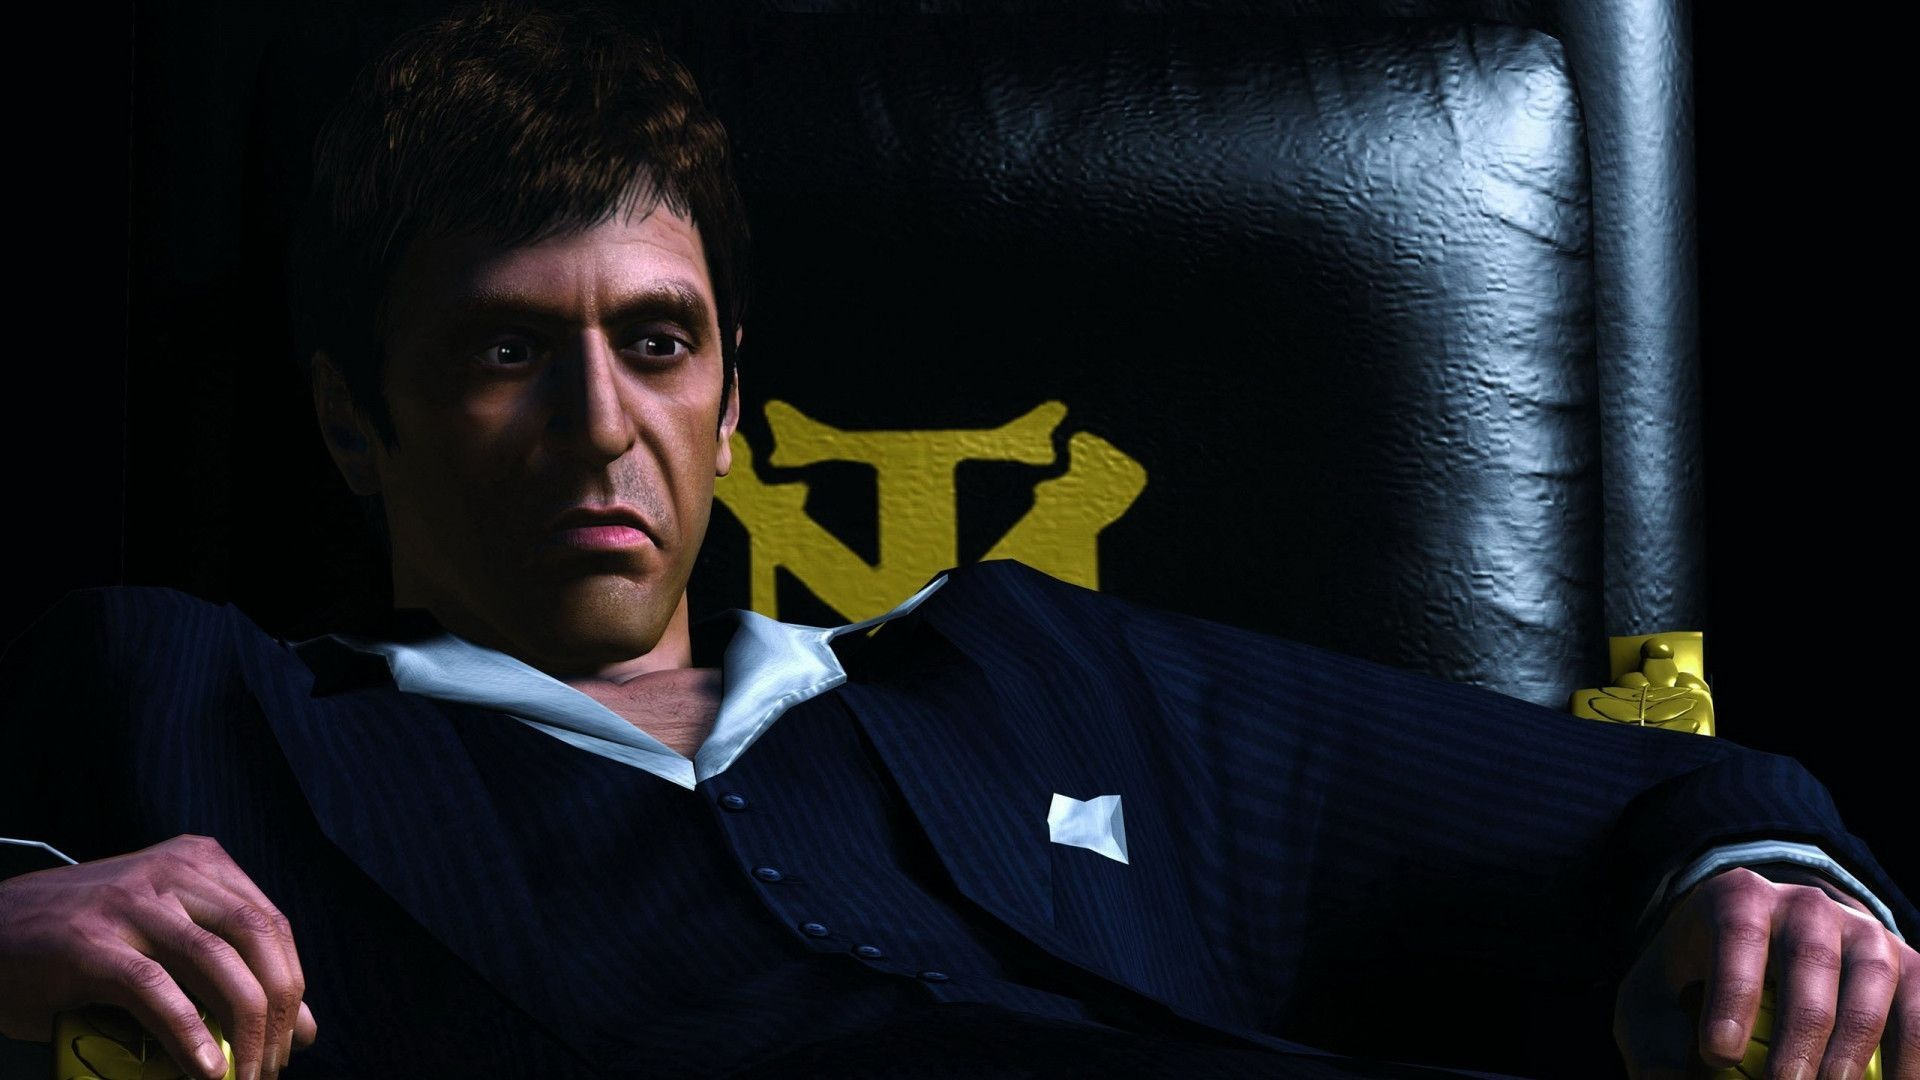 1920x1080 Scarface Images